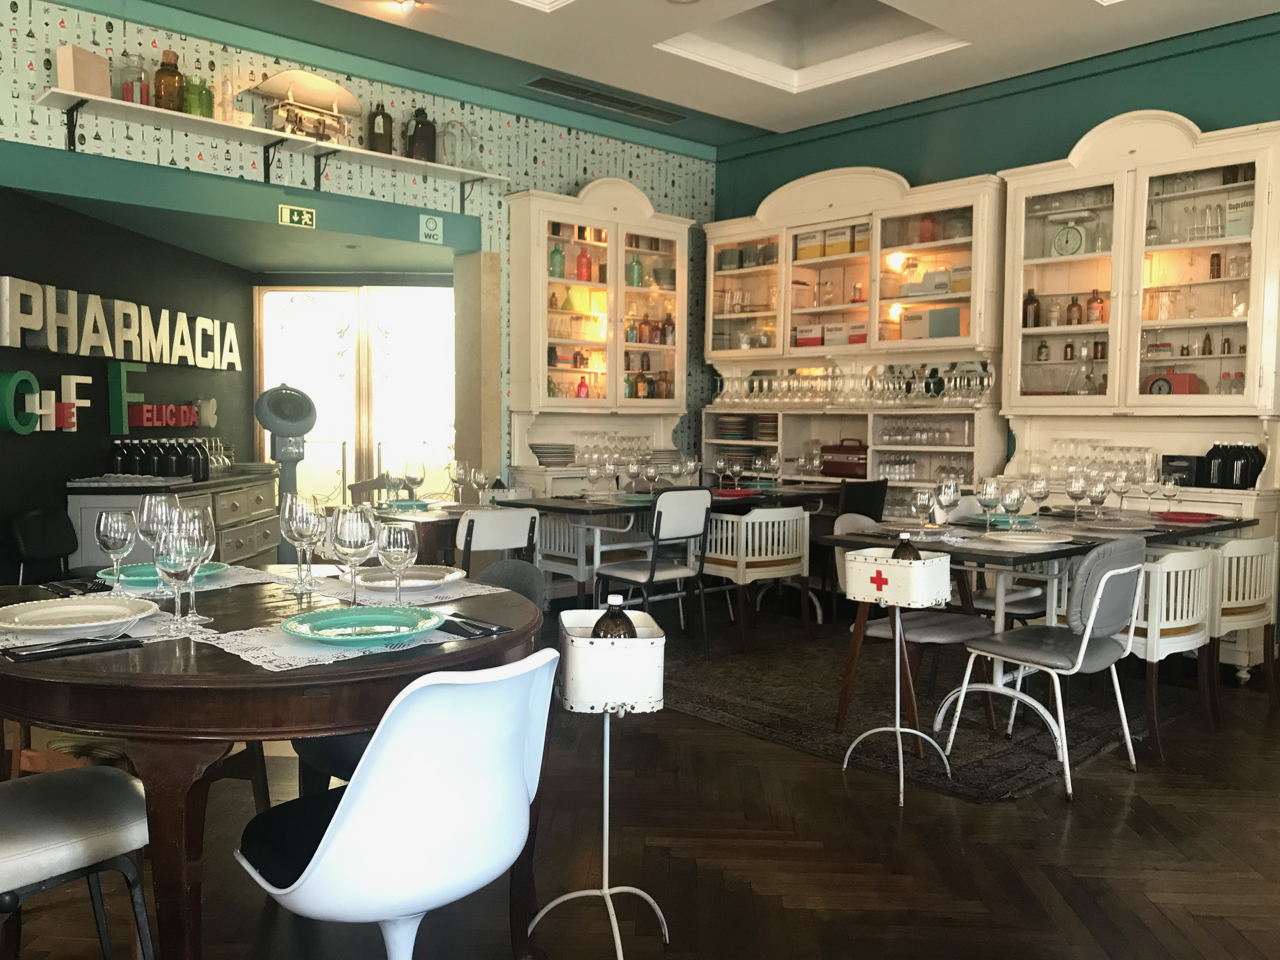 A photo of the tables, chairs and wallpaper (all of which are pharmacy themed) at Pharmacia restaurant in Lisbon, Portugal. All of the shelves and cabinets are filled with old drug bottles and other objects you might find at a pharmacy.